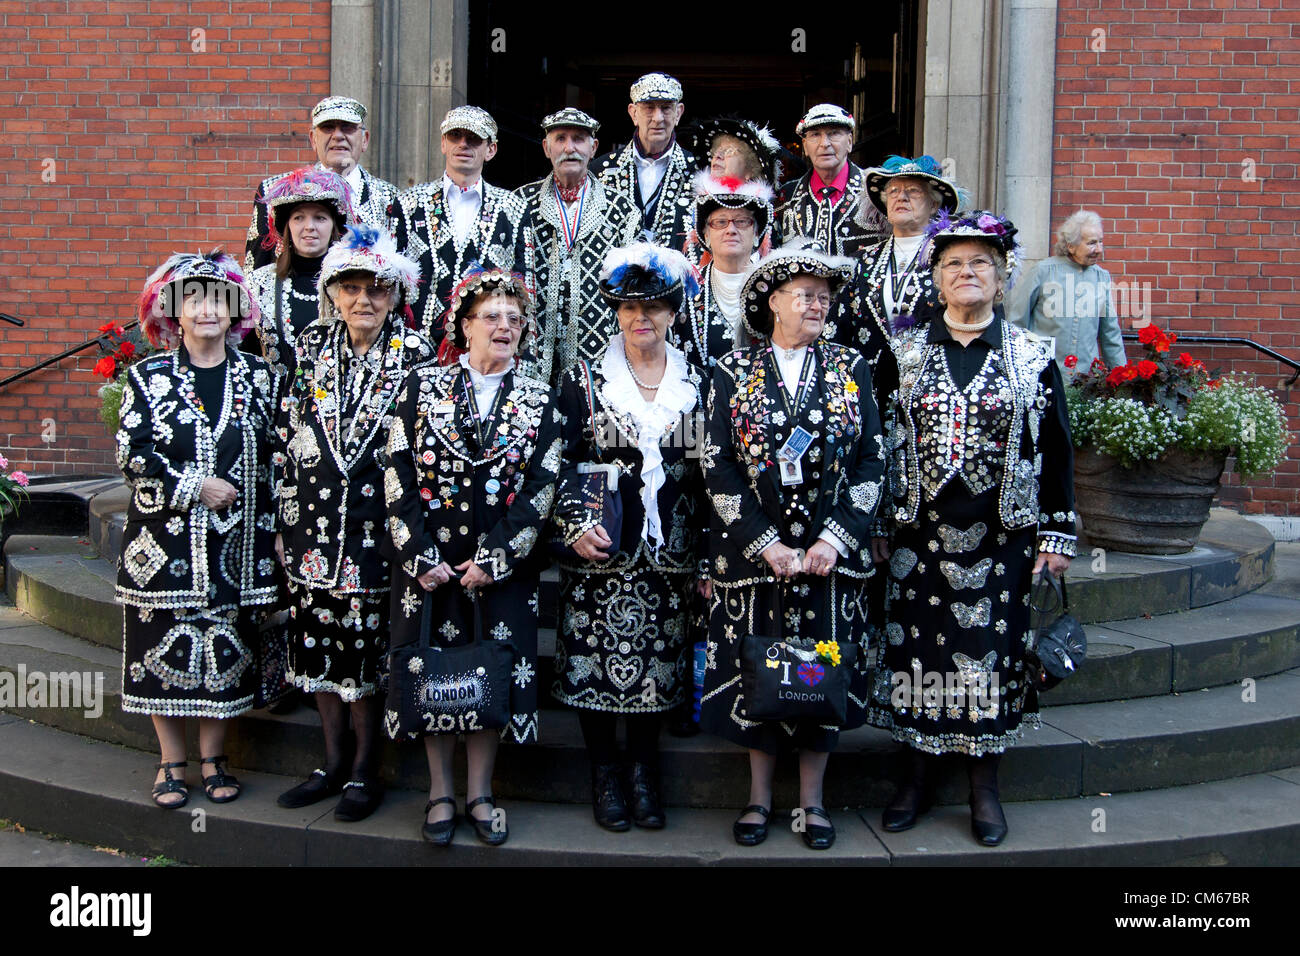 14th Oct 2012,  Pearly Kings & Queens Harvest Festival St. Paul's Church, Covent Garden, London, UK. - Stock Image